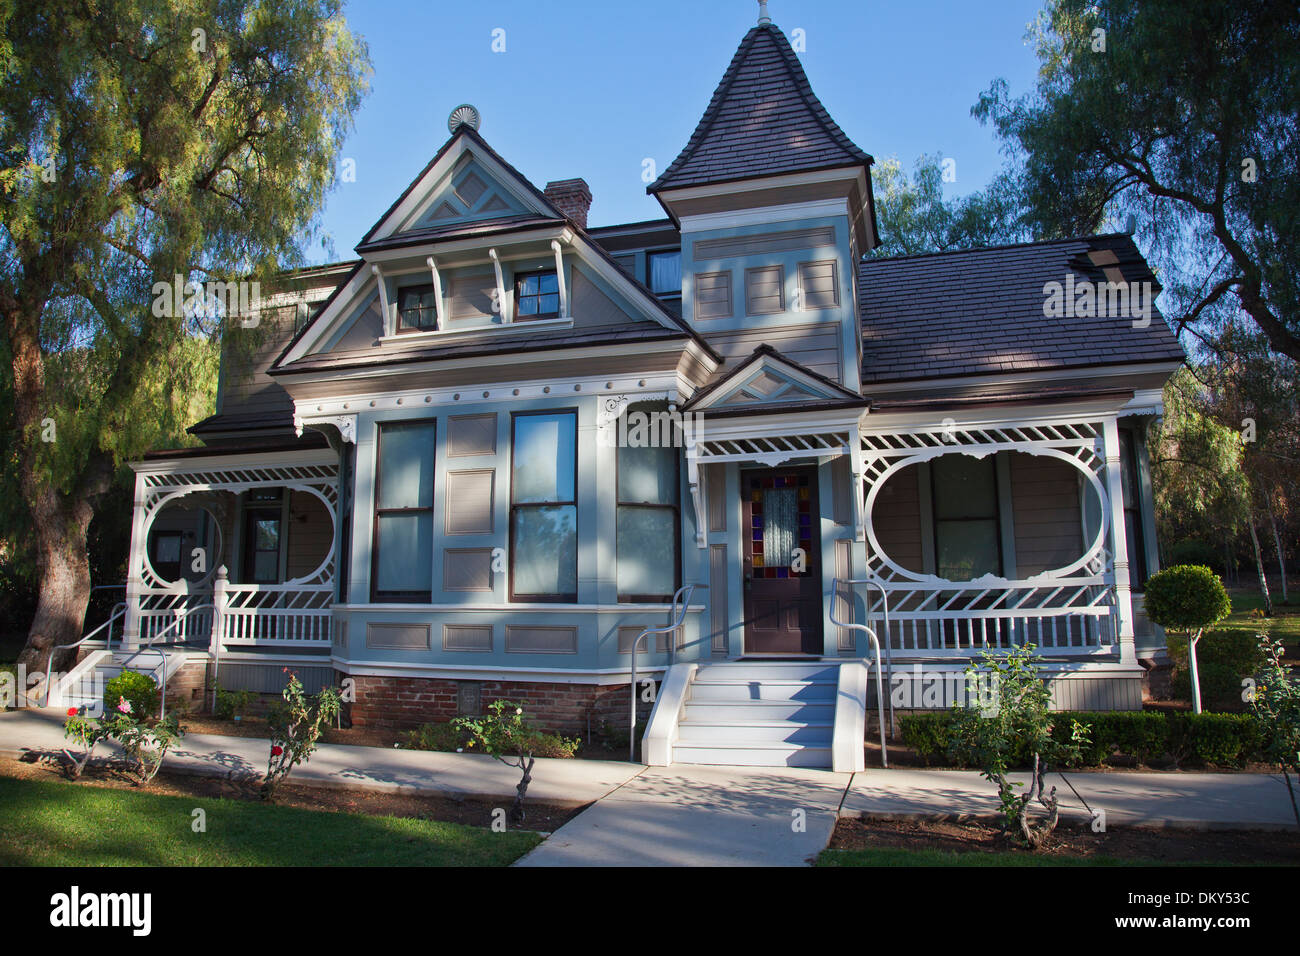 The Doctors' House Museum, Brand LIbrary Park, Glendale, California, USA - Stock Image